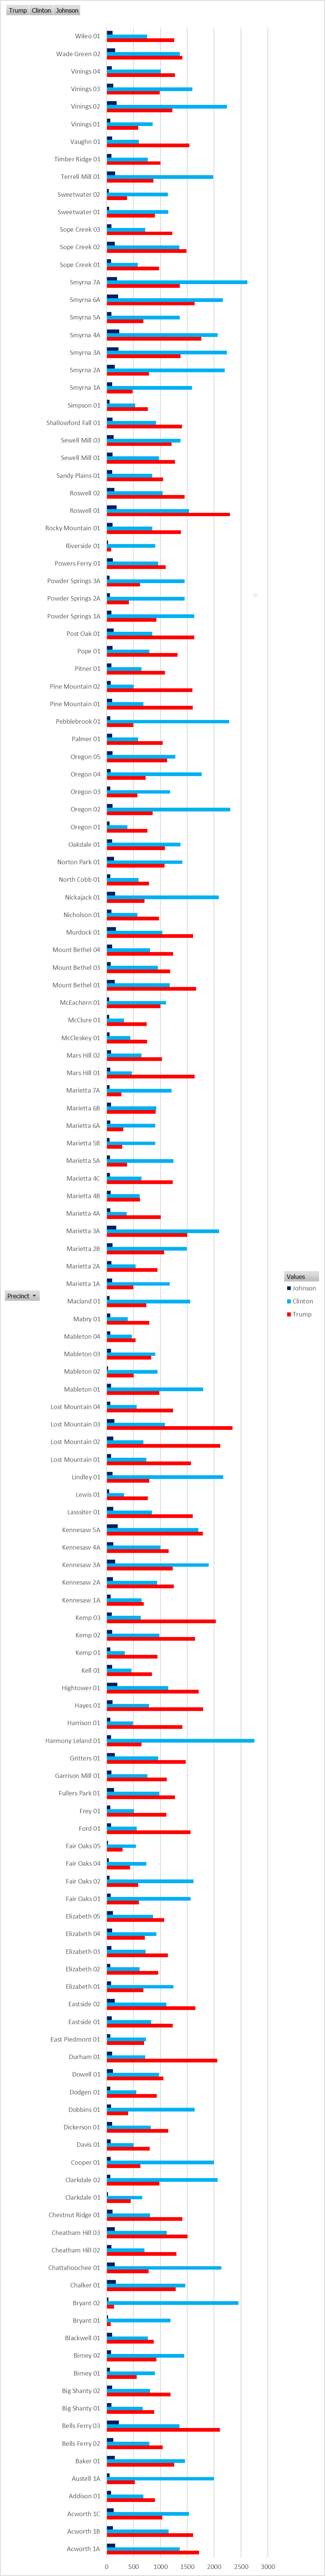 barchartprecinct